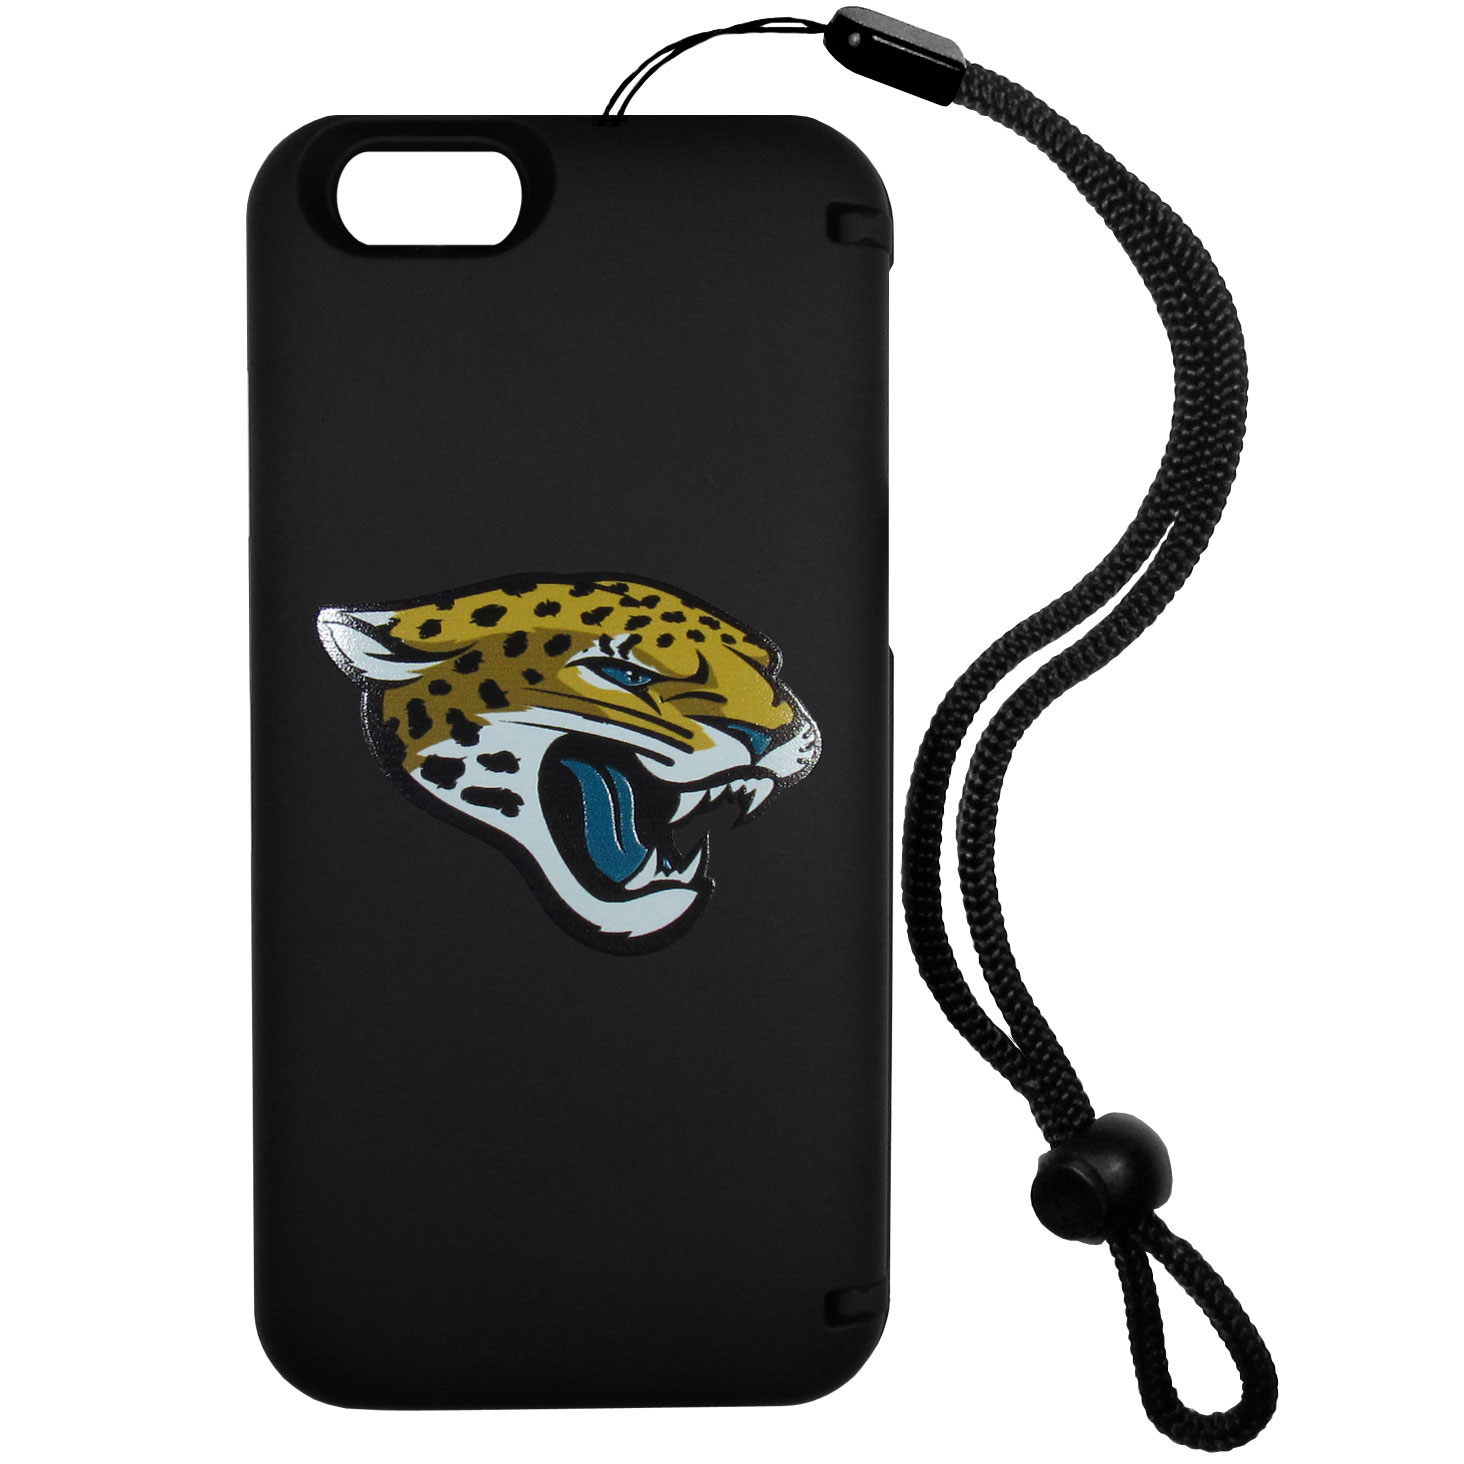 Jacksonville Jaguars iPhone 6 Everything Case - This case really does have everything but the kitchen sink! The hidden compartment lets you keep your cards, money and tickets to the big game safe and secure and has a compact mirror so you can make sure your game face is ready to go. It also comes with a kickstand to make chatting and watching videos a breeze. The wrist strap allows you to travel with ease with your everything case. If that's not enough, it also comes with the Jacksonville Jaguars logo printed in expert detail on the front.